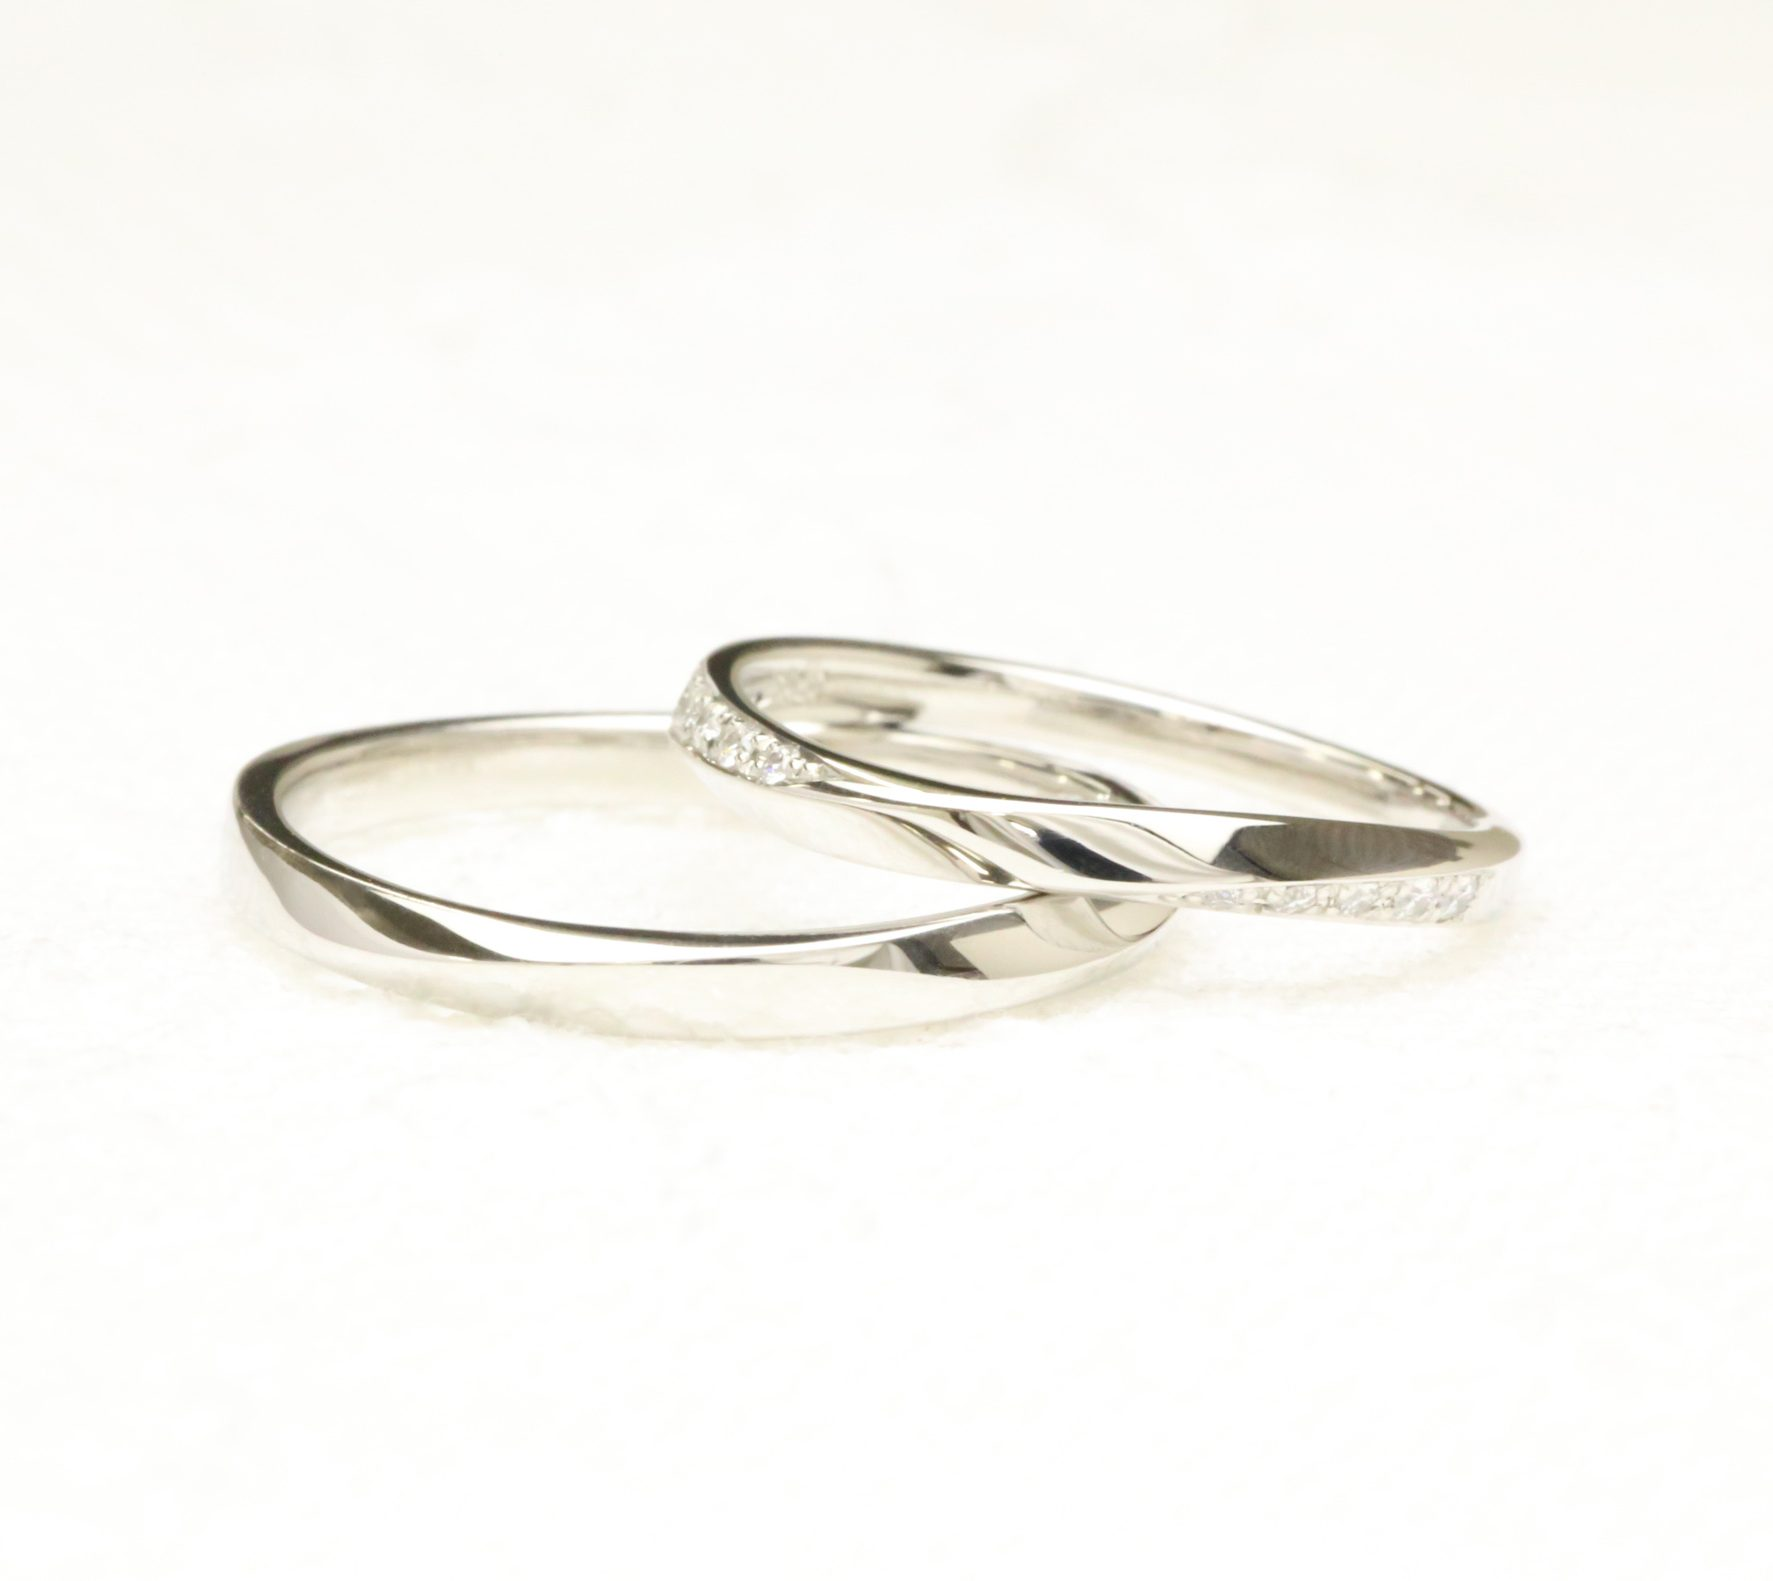 MARRIAGE RING 2